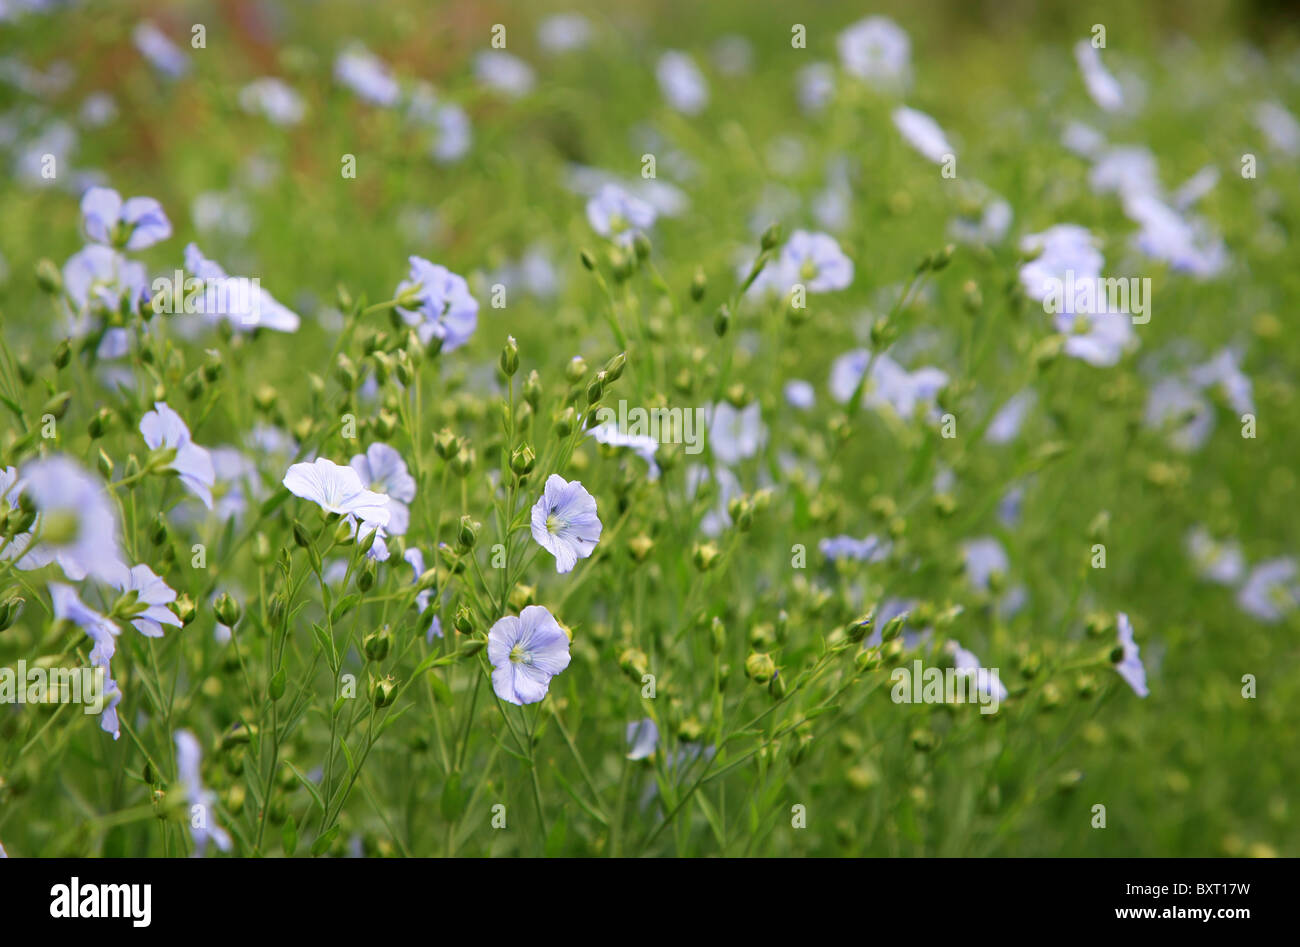 Field of flax plants - Stock Image